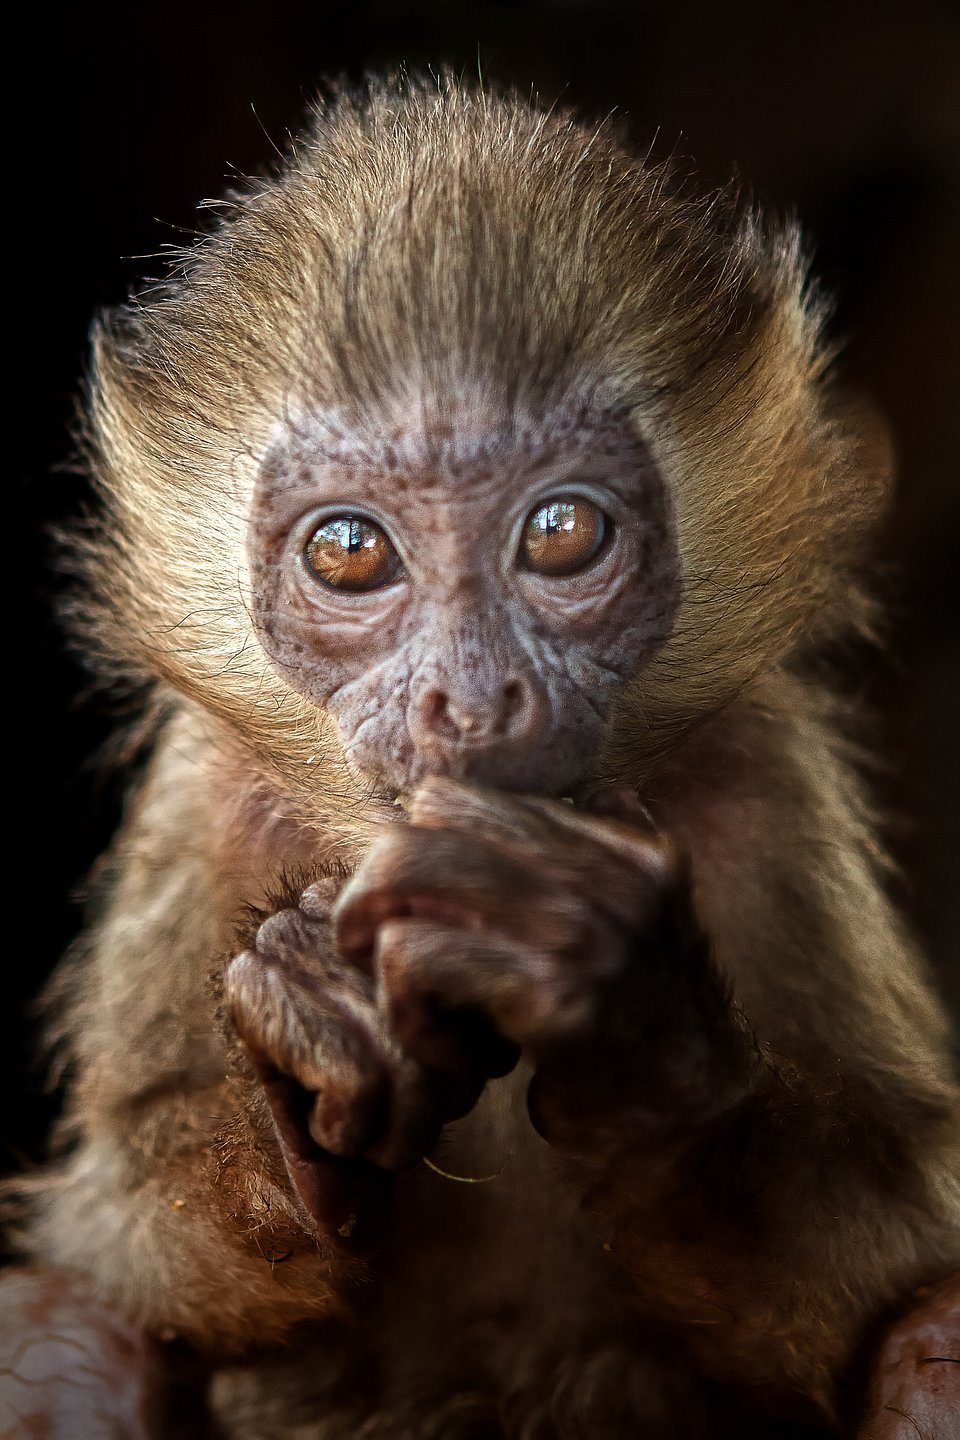 This baby monkey holds a lot of expression in its golden eyes. (Agora)